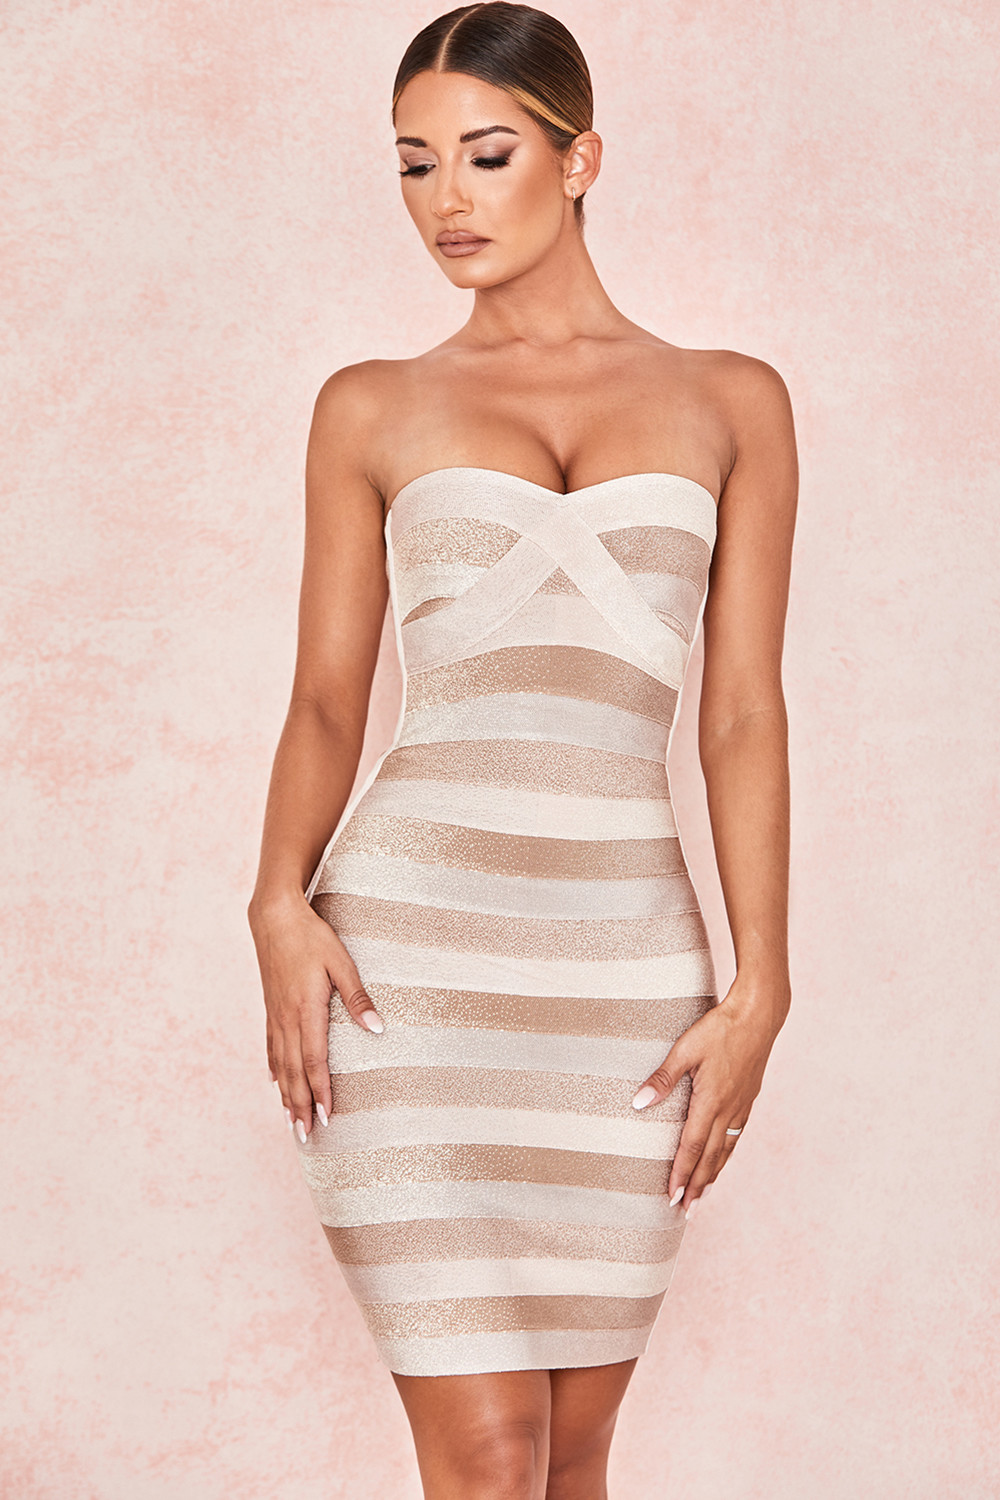 Lyer 2019 New High quality sexy strapless patchwork rayon bandage dress party